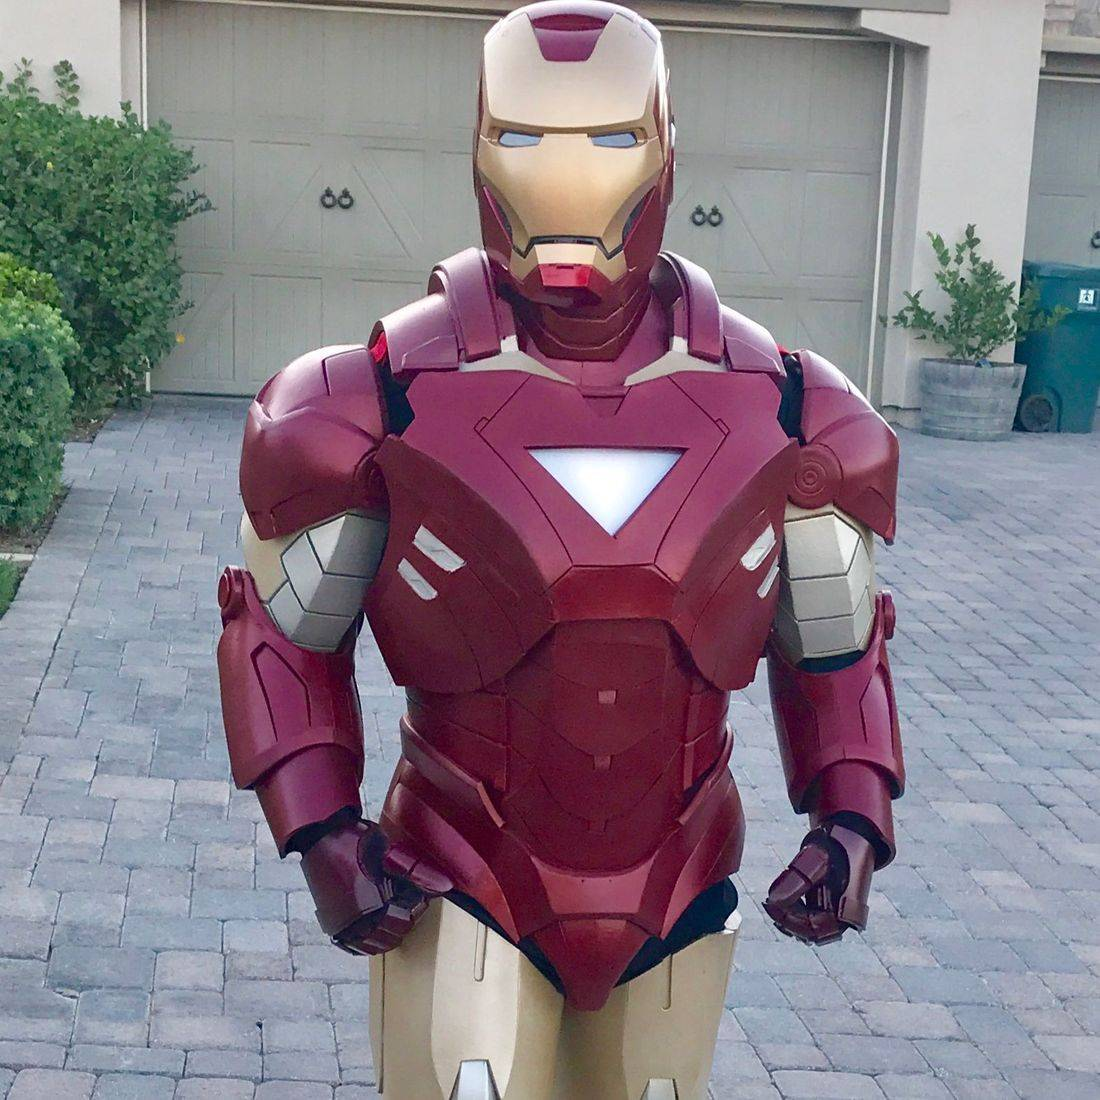 iron man,iron man party,ironman party,superhero party, party,riverside,character,princess party, kid's party entertainment